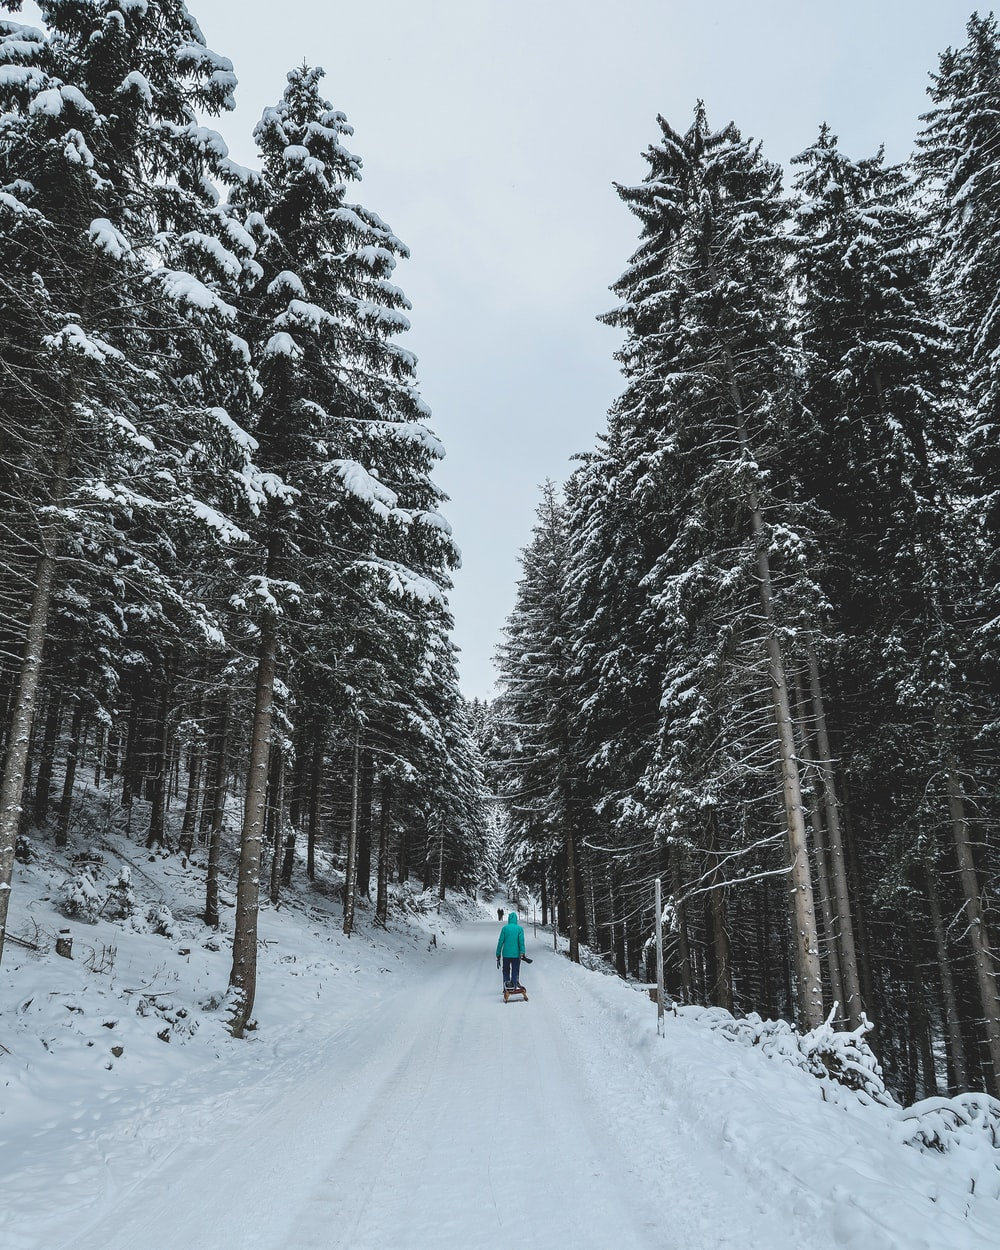 Snowy Forest Pictures Download Free Images On Unsplash